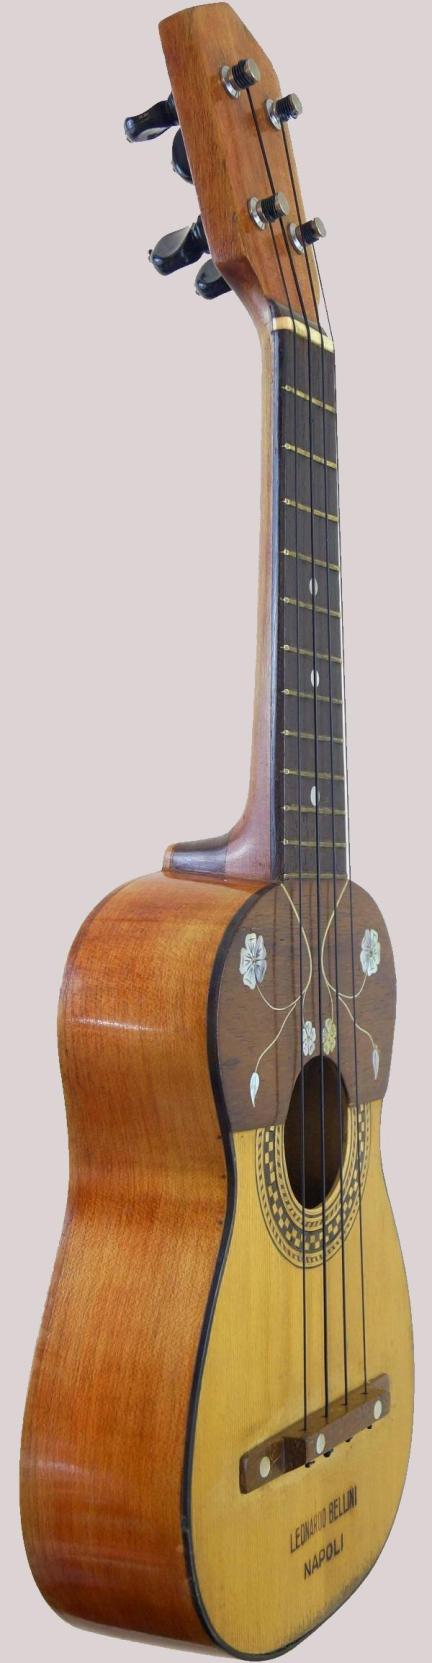 italian pre war decorated Soprano Ukulele